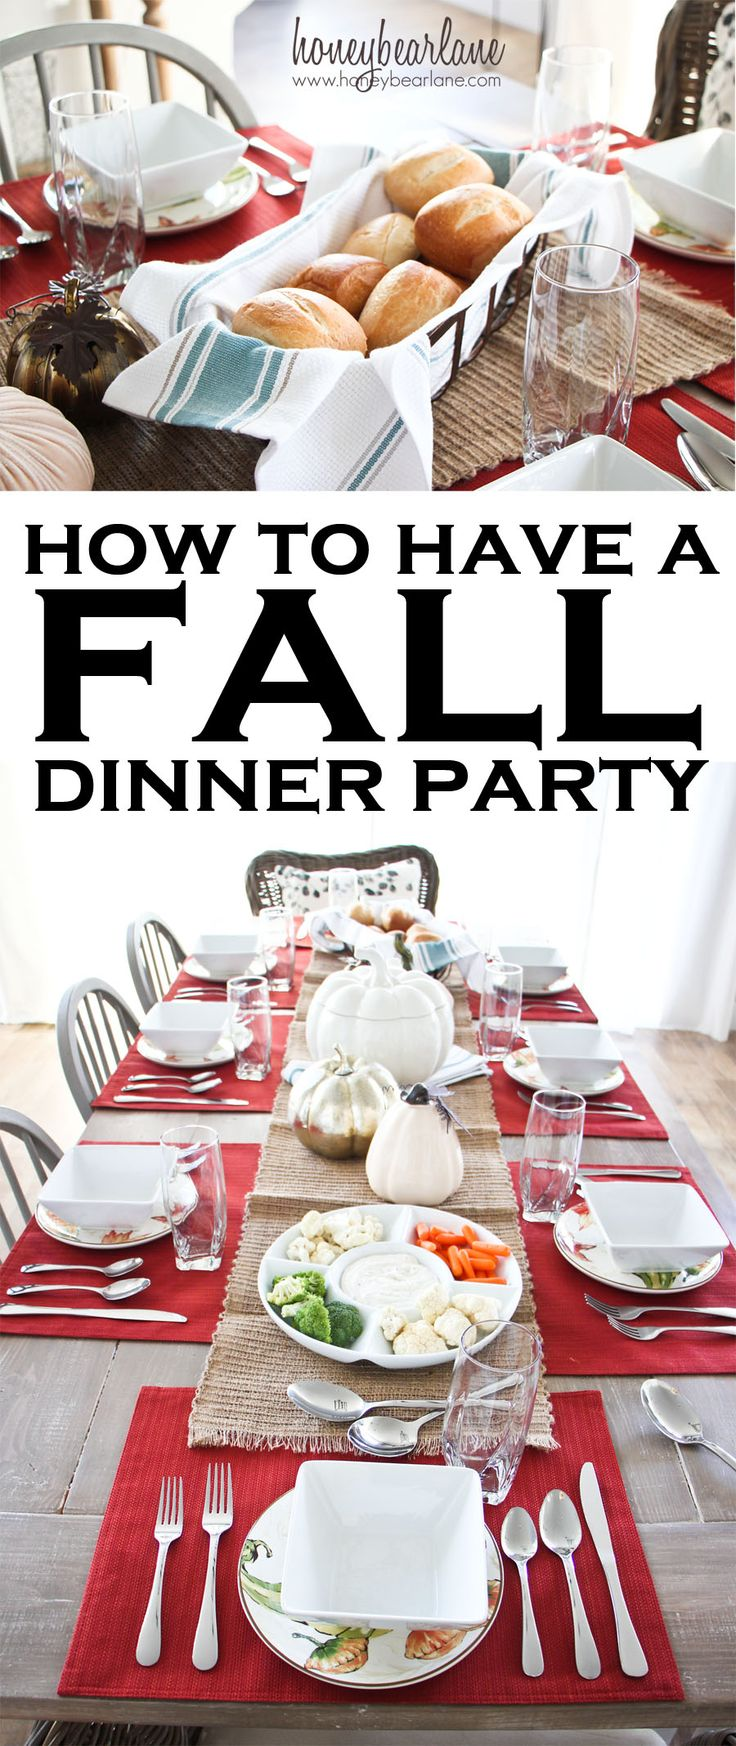 how to have a dinner party where they cook